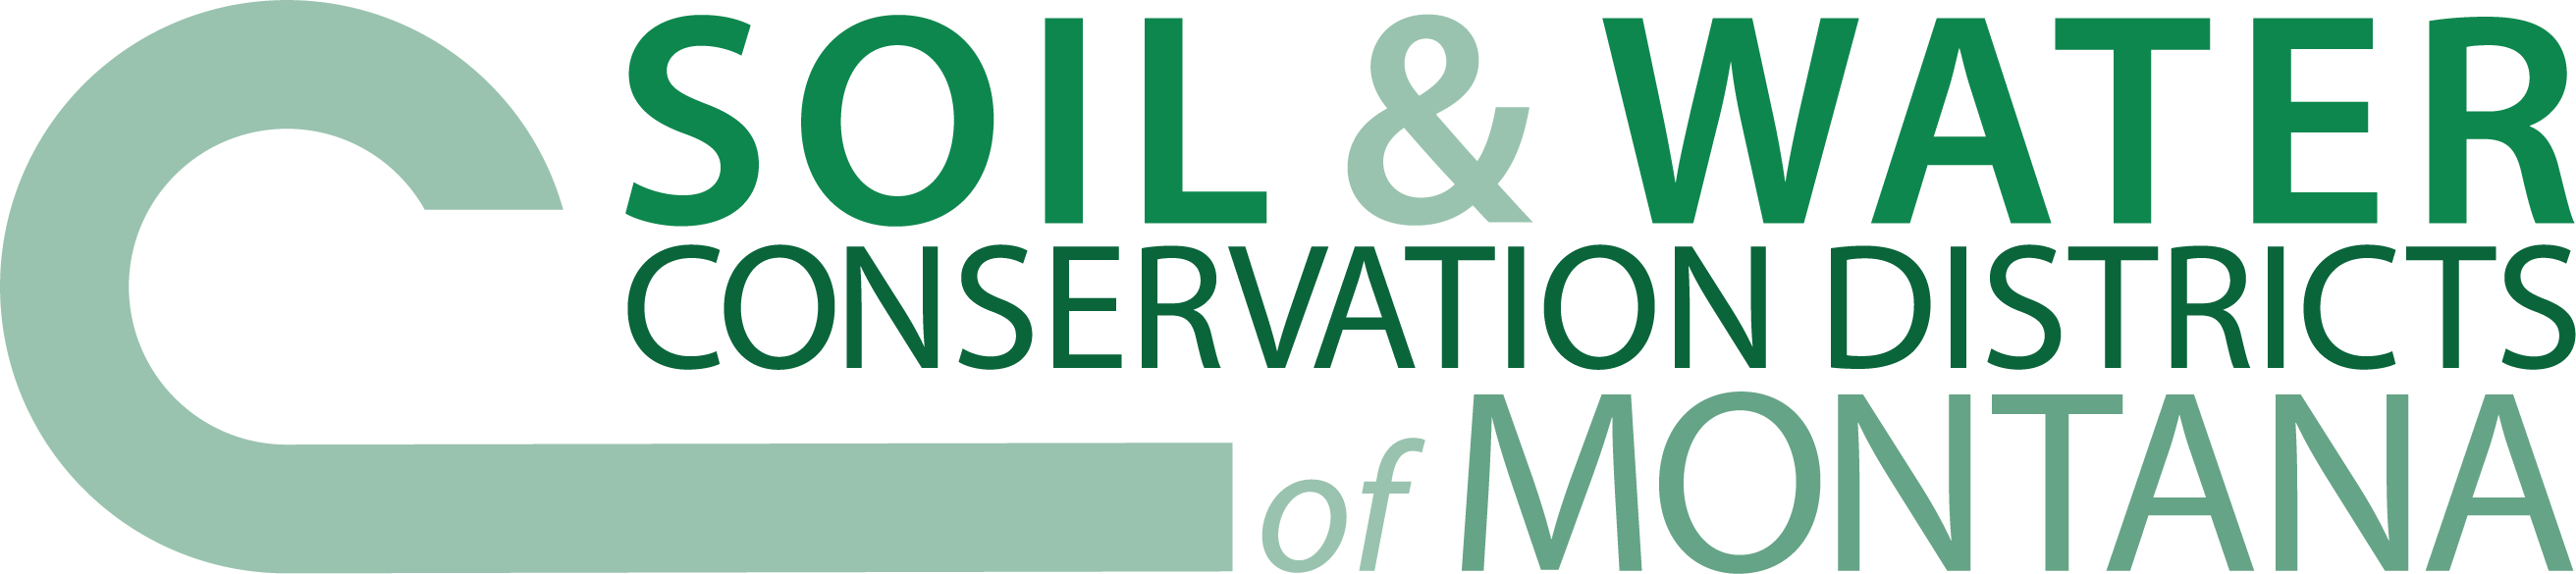 Soil and Water Conservation Districts of Montana